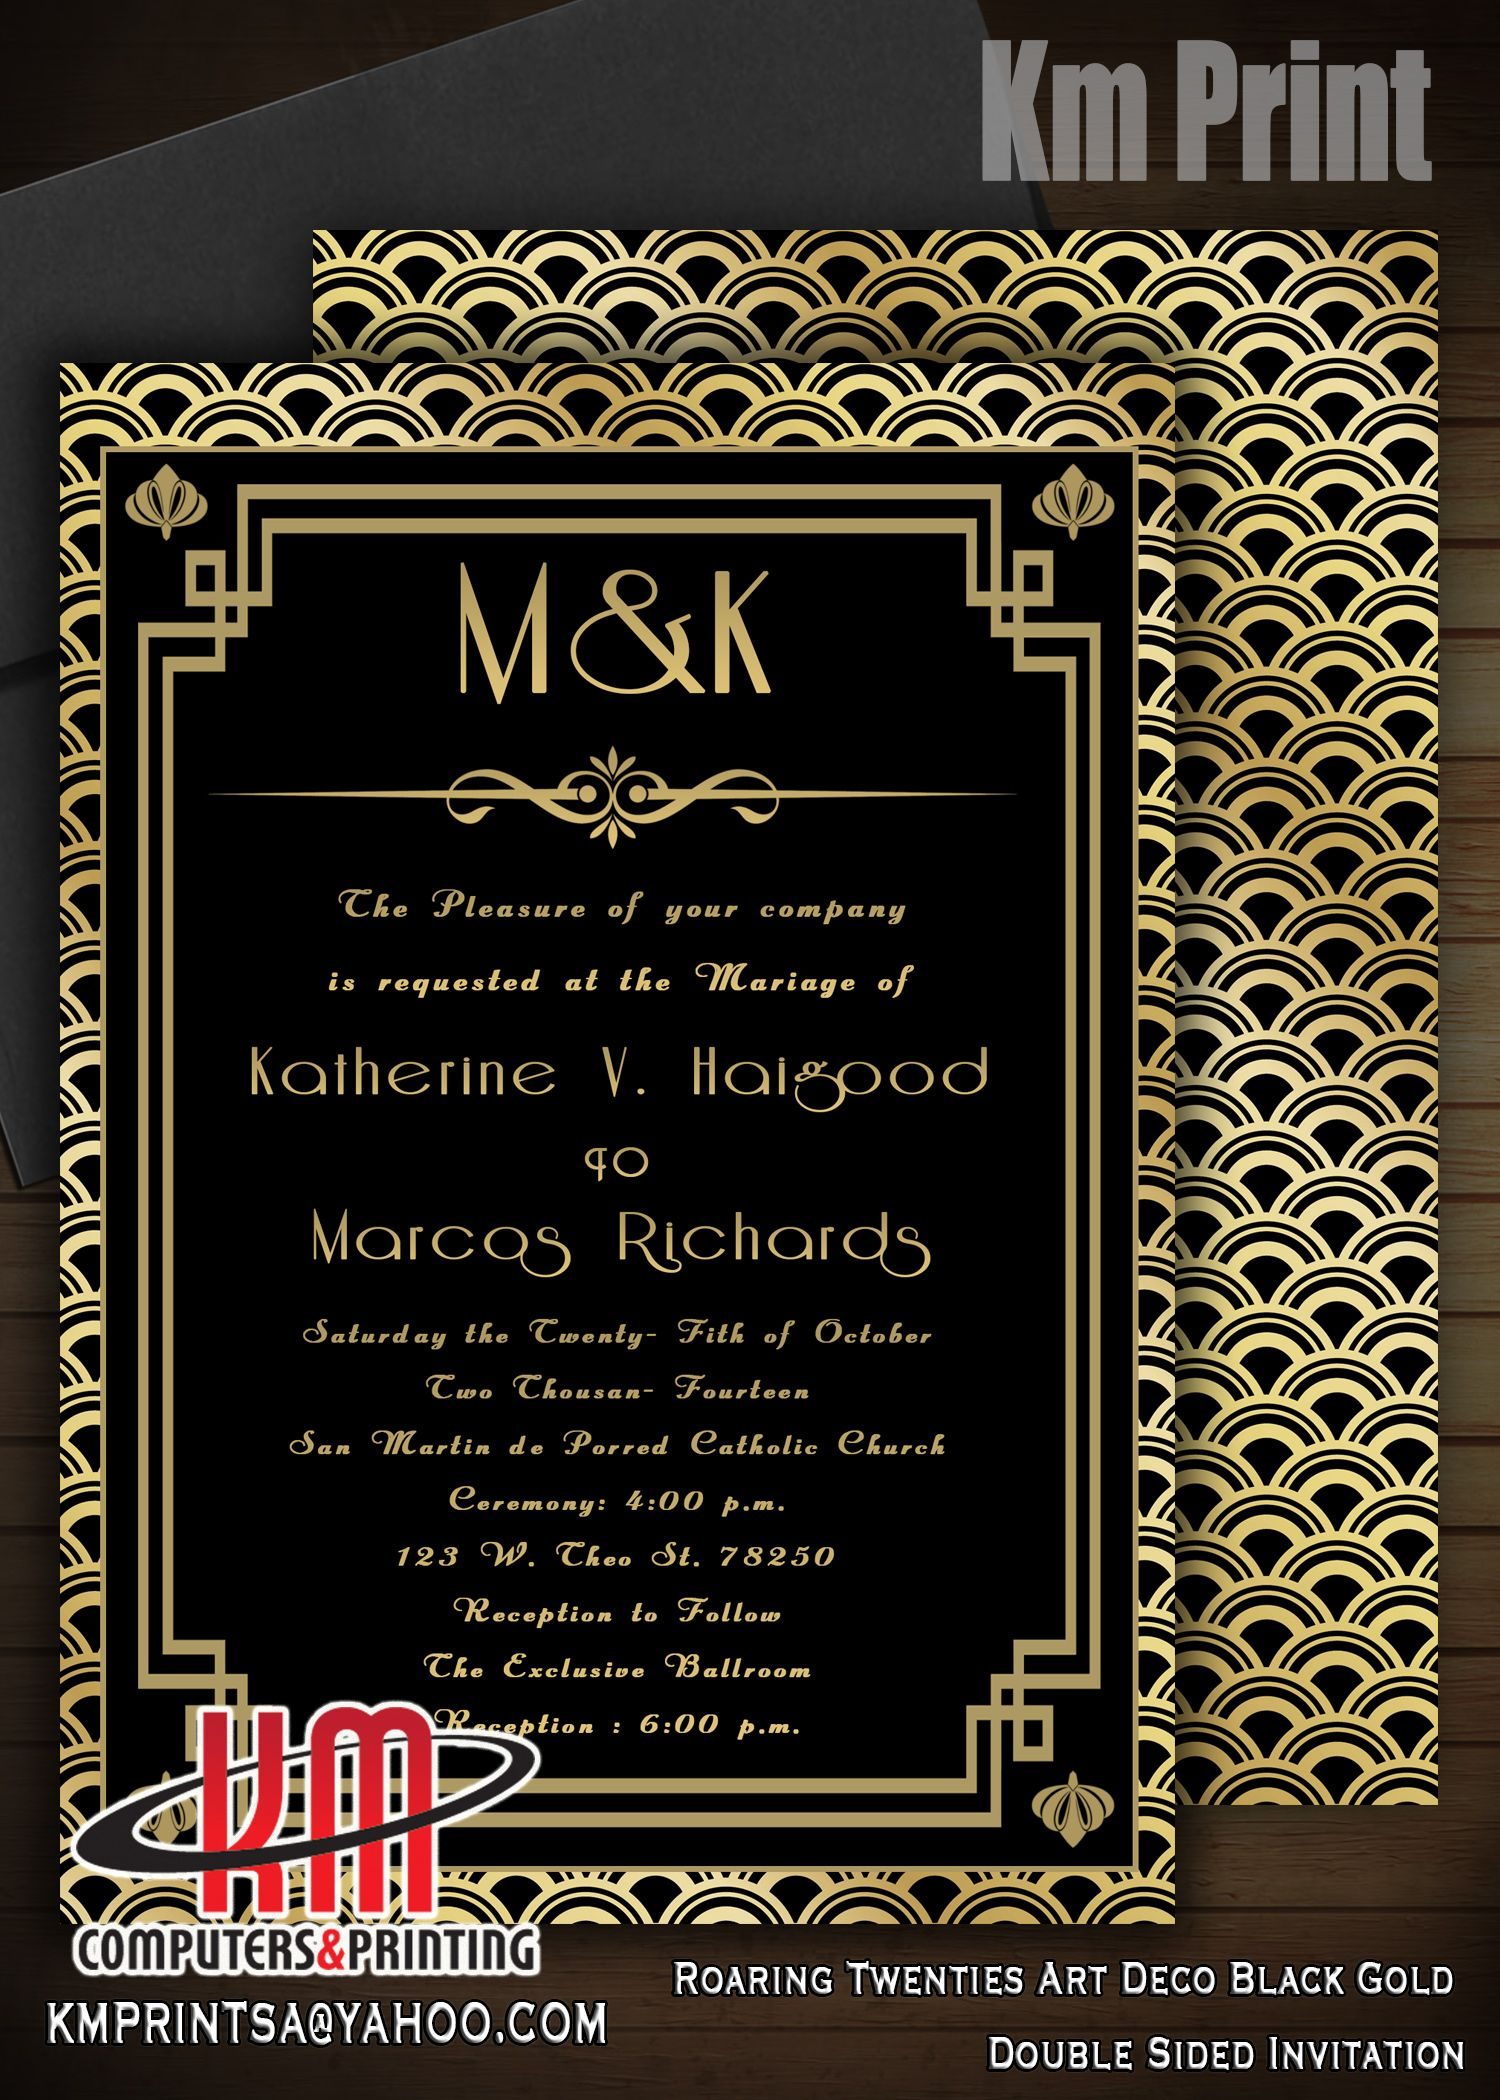 the great gatsby wedding invitations digital graphics double sided